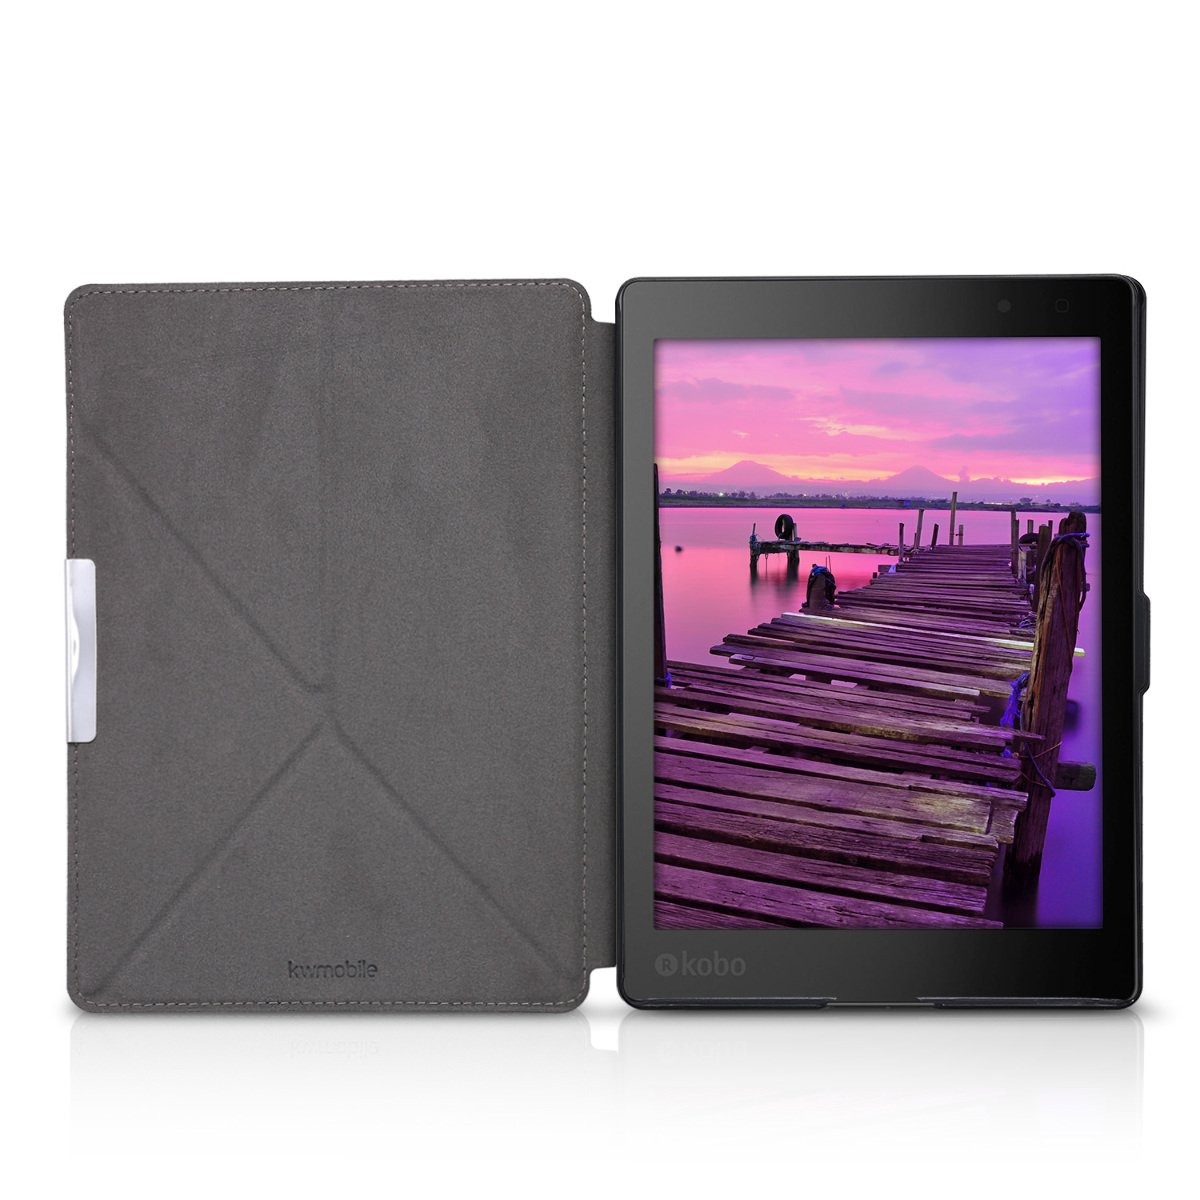 kwmobile Cover case for Kobo Aura ONE with stand - Ultra slim case made of synthetic leather Elephant Sketch in dark pink anthracite by kwmobile (Image #5)